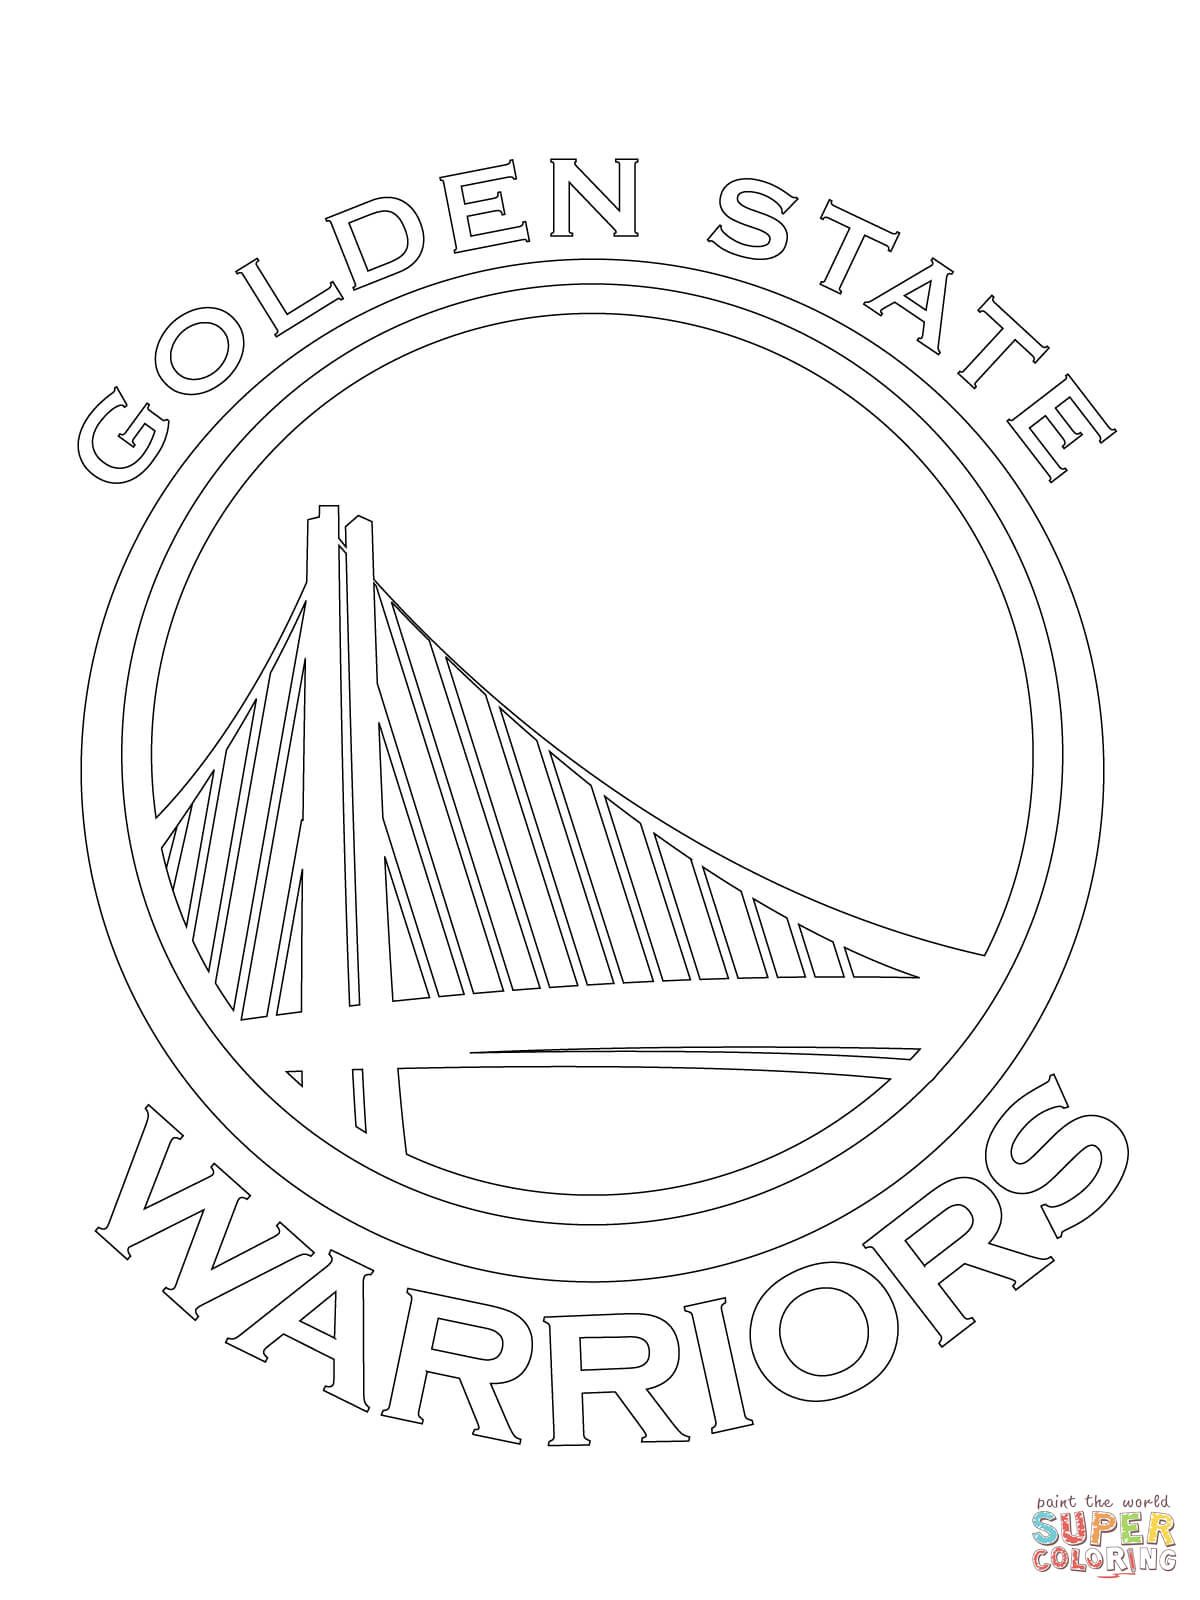 State Warriors Logo coloring page | Free Printable Coloring Pages